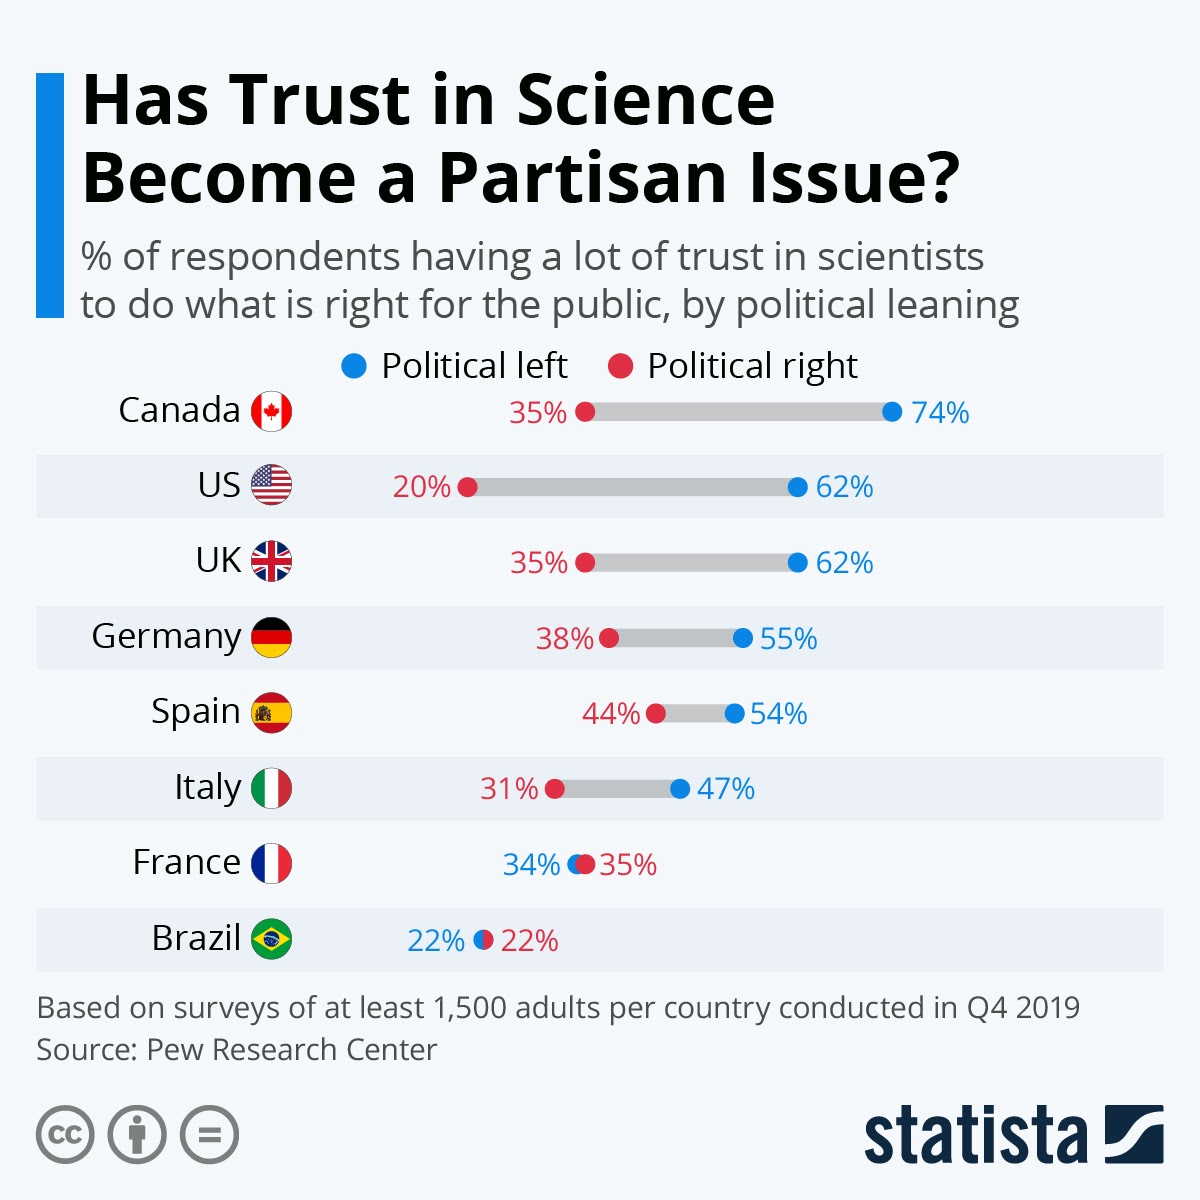 Has Trust in Science Become a Partisan Issue? #infographic